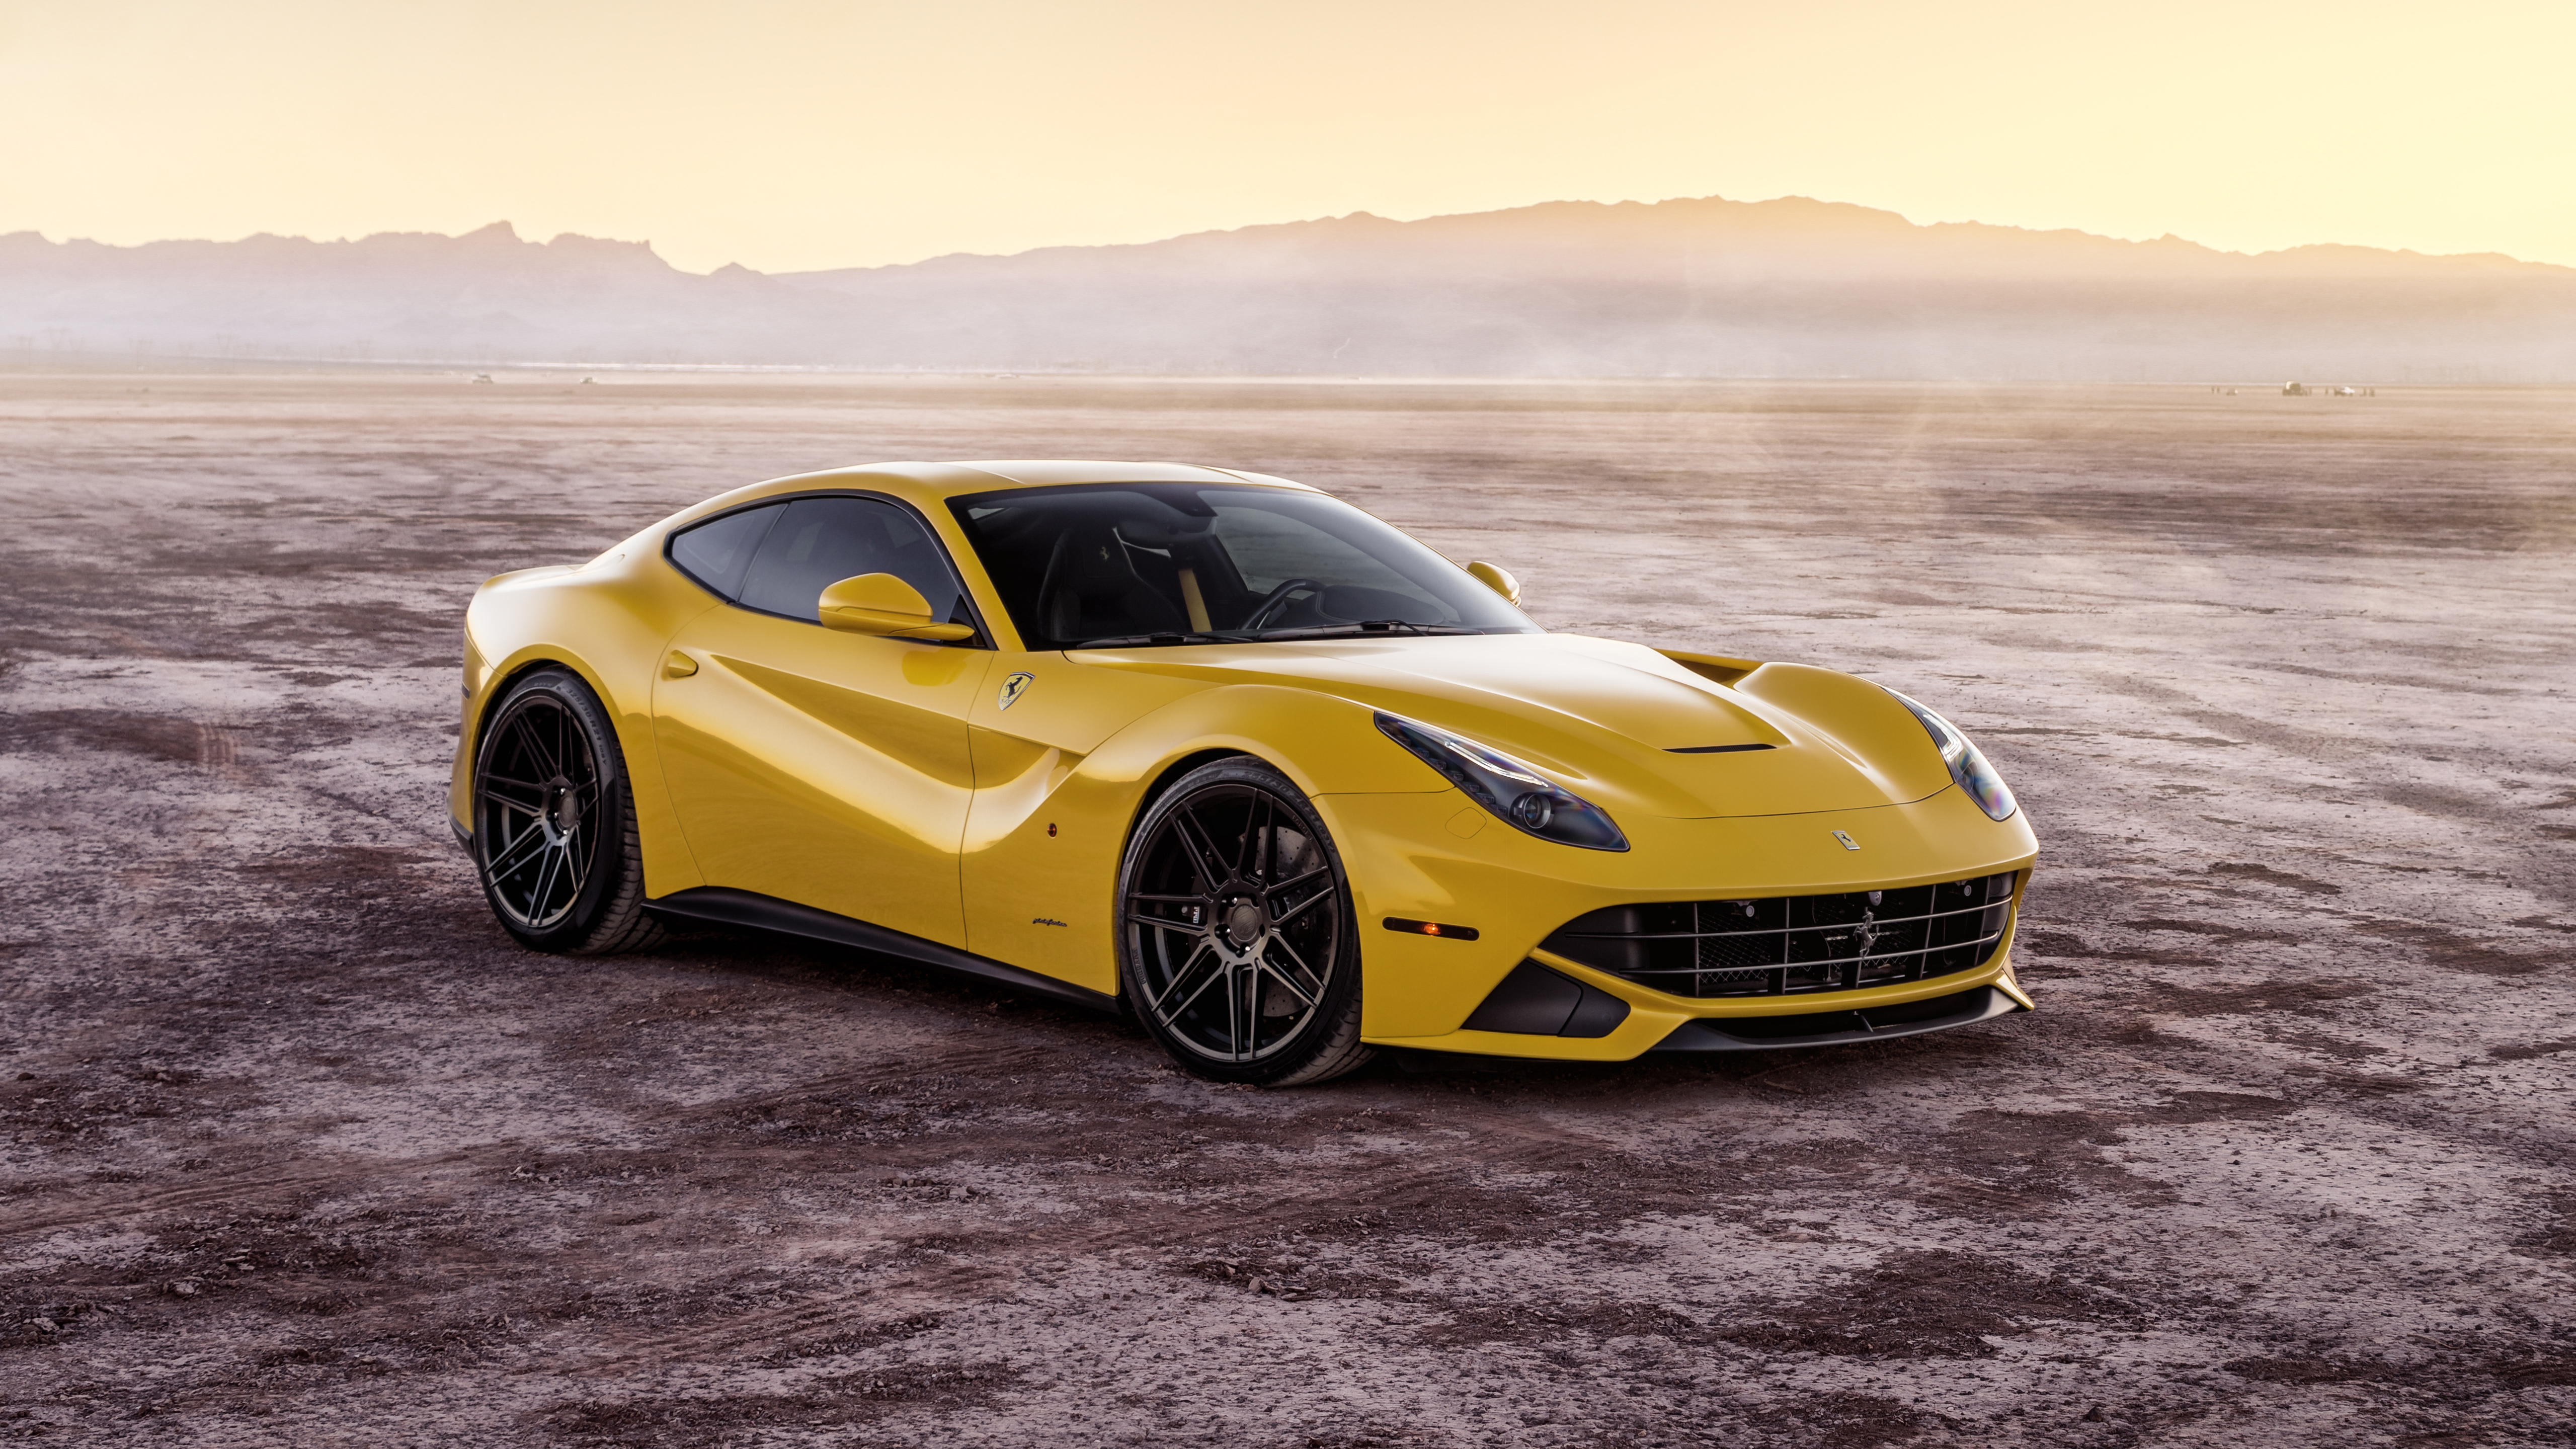 Ferrada Sema Yellow Ferrari F12 5k 3 Wallpaper Hd Car